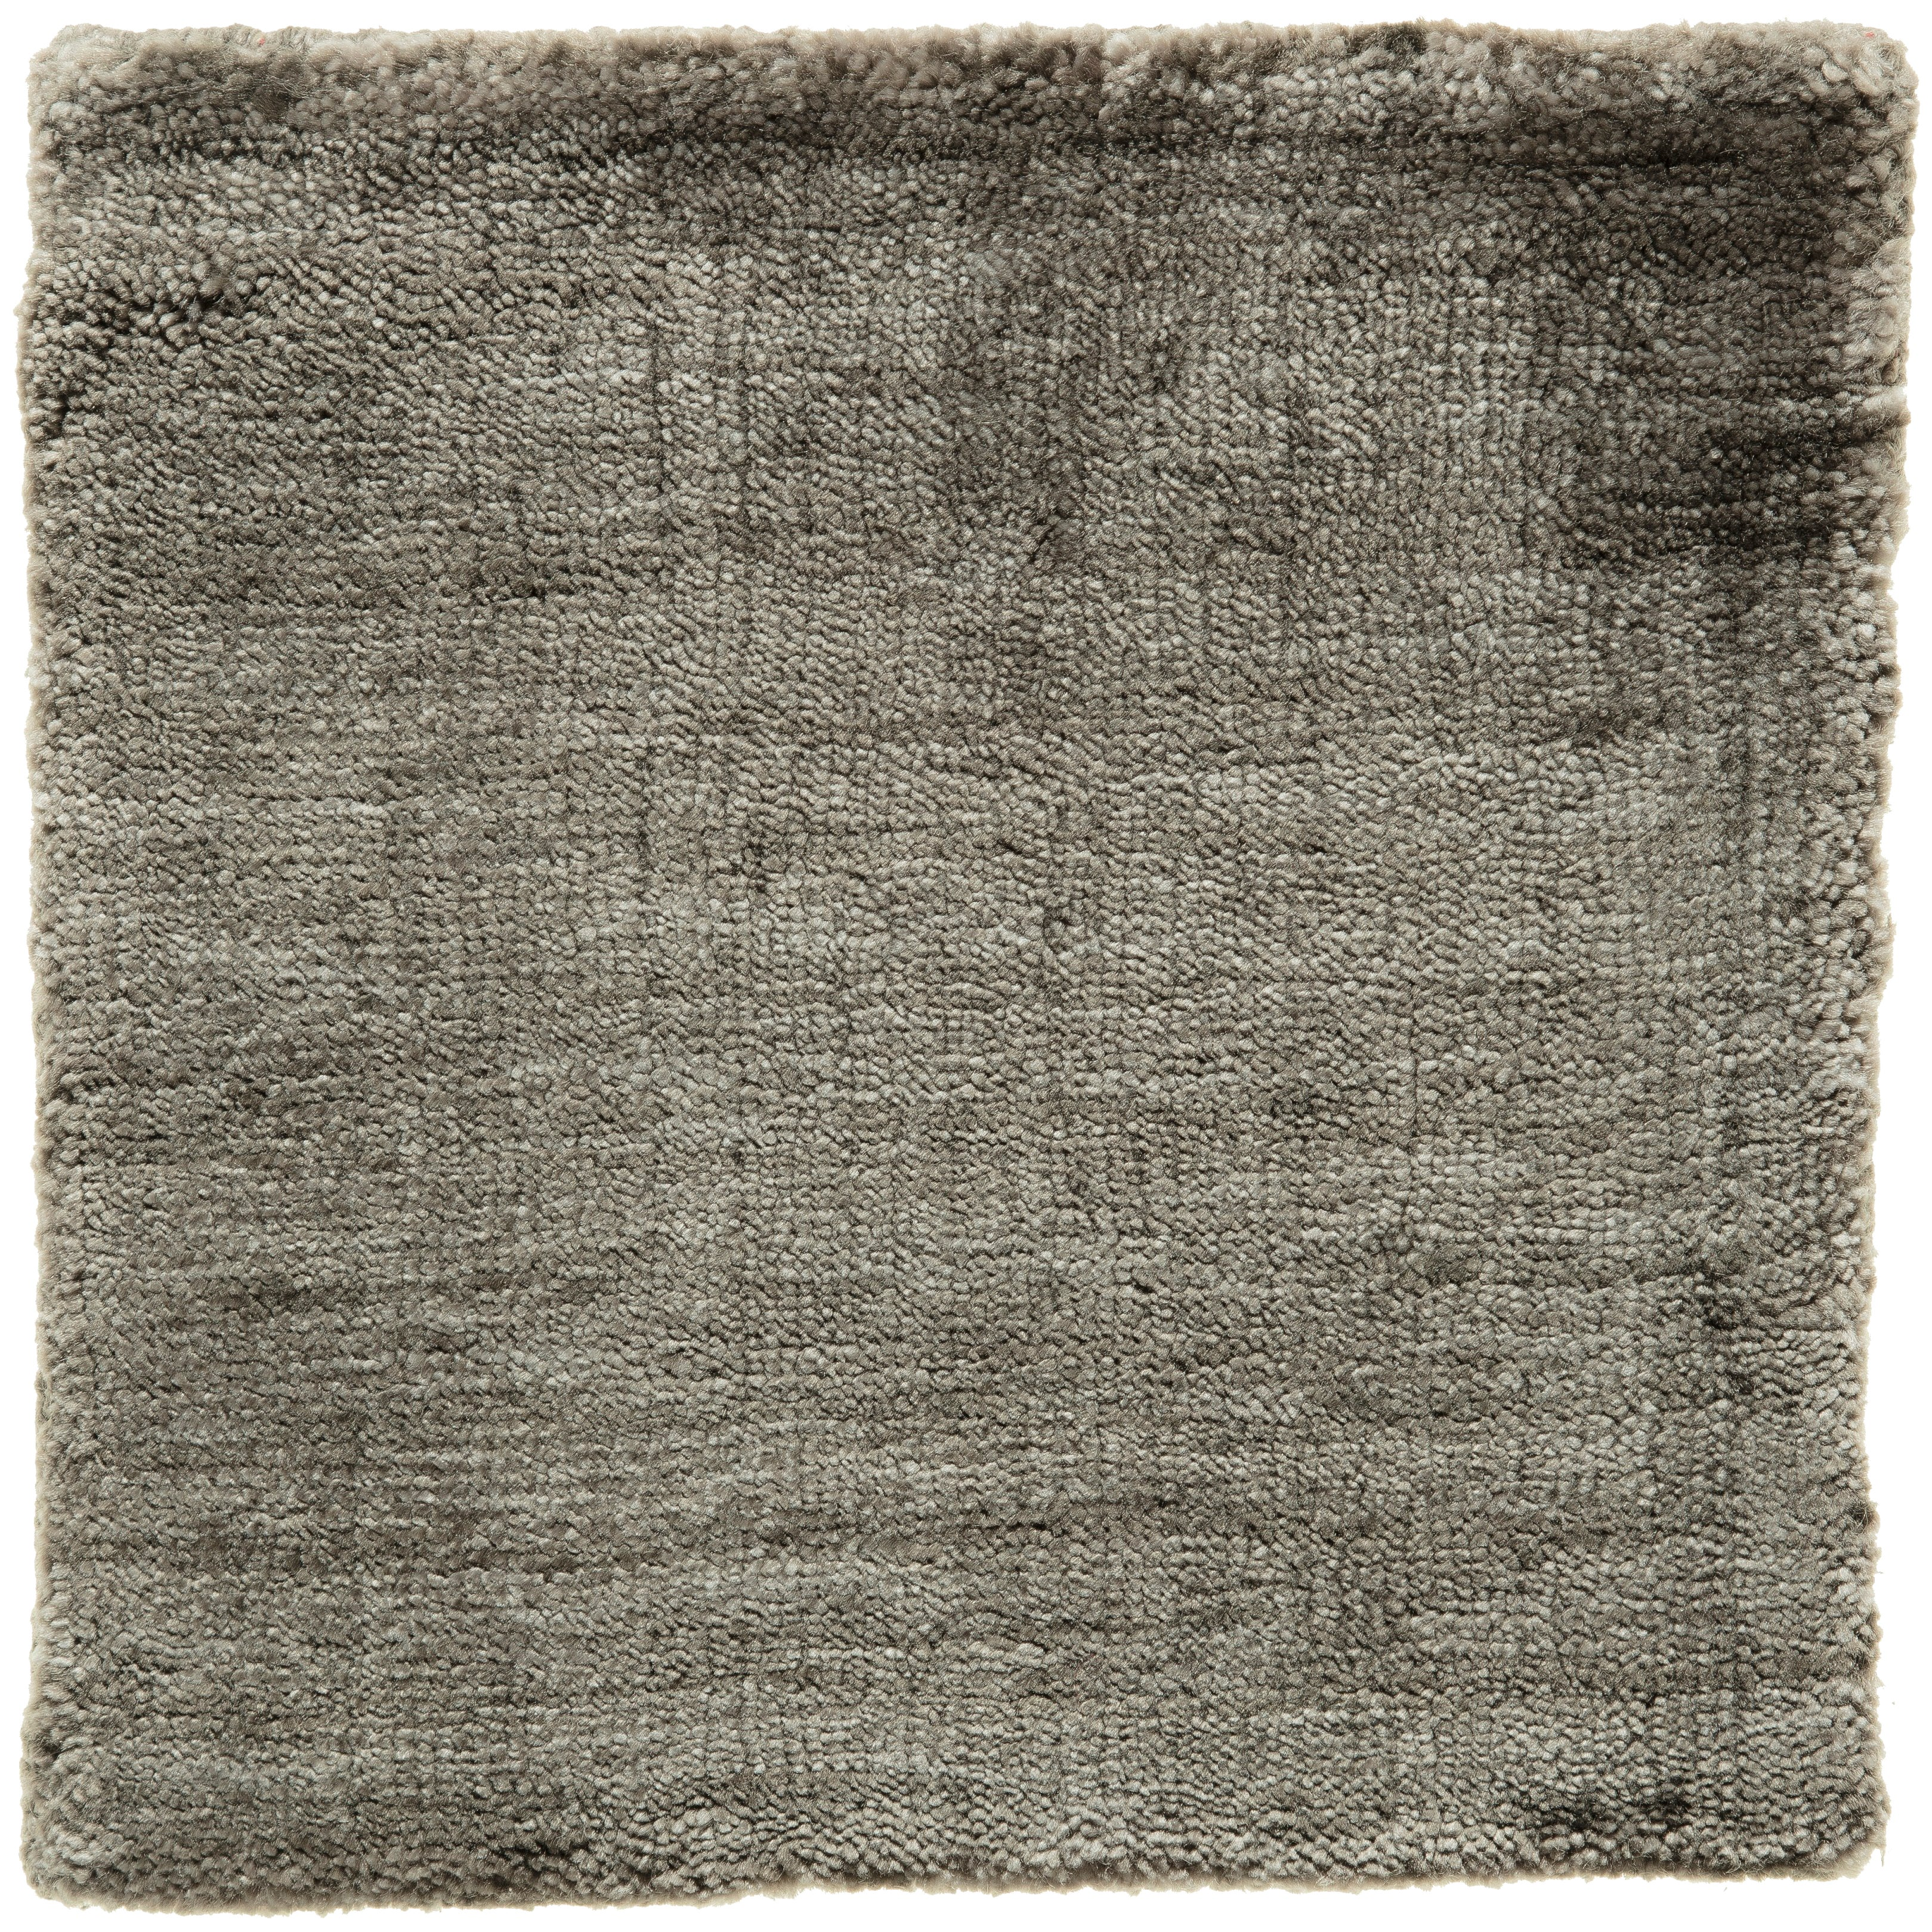 Contemporary Taupe Gray Hand-Loomed Bamboo Silk Solid Grey Rug in Any Size